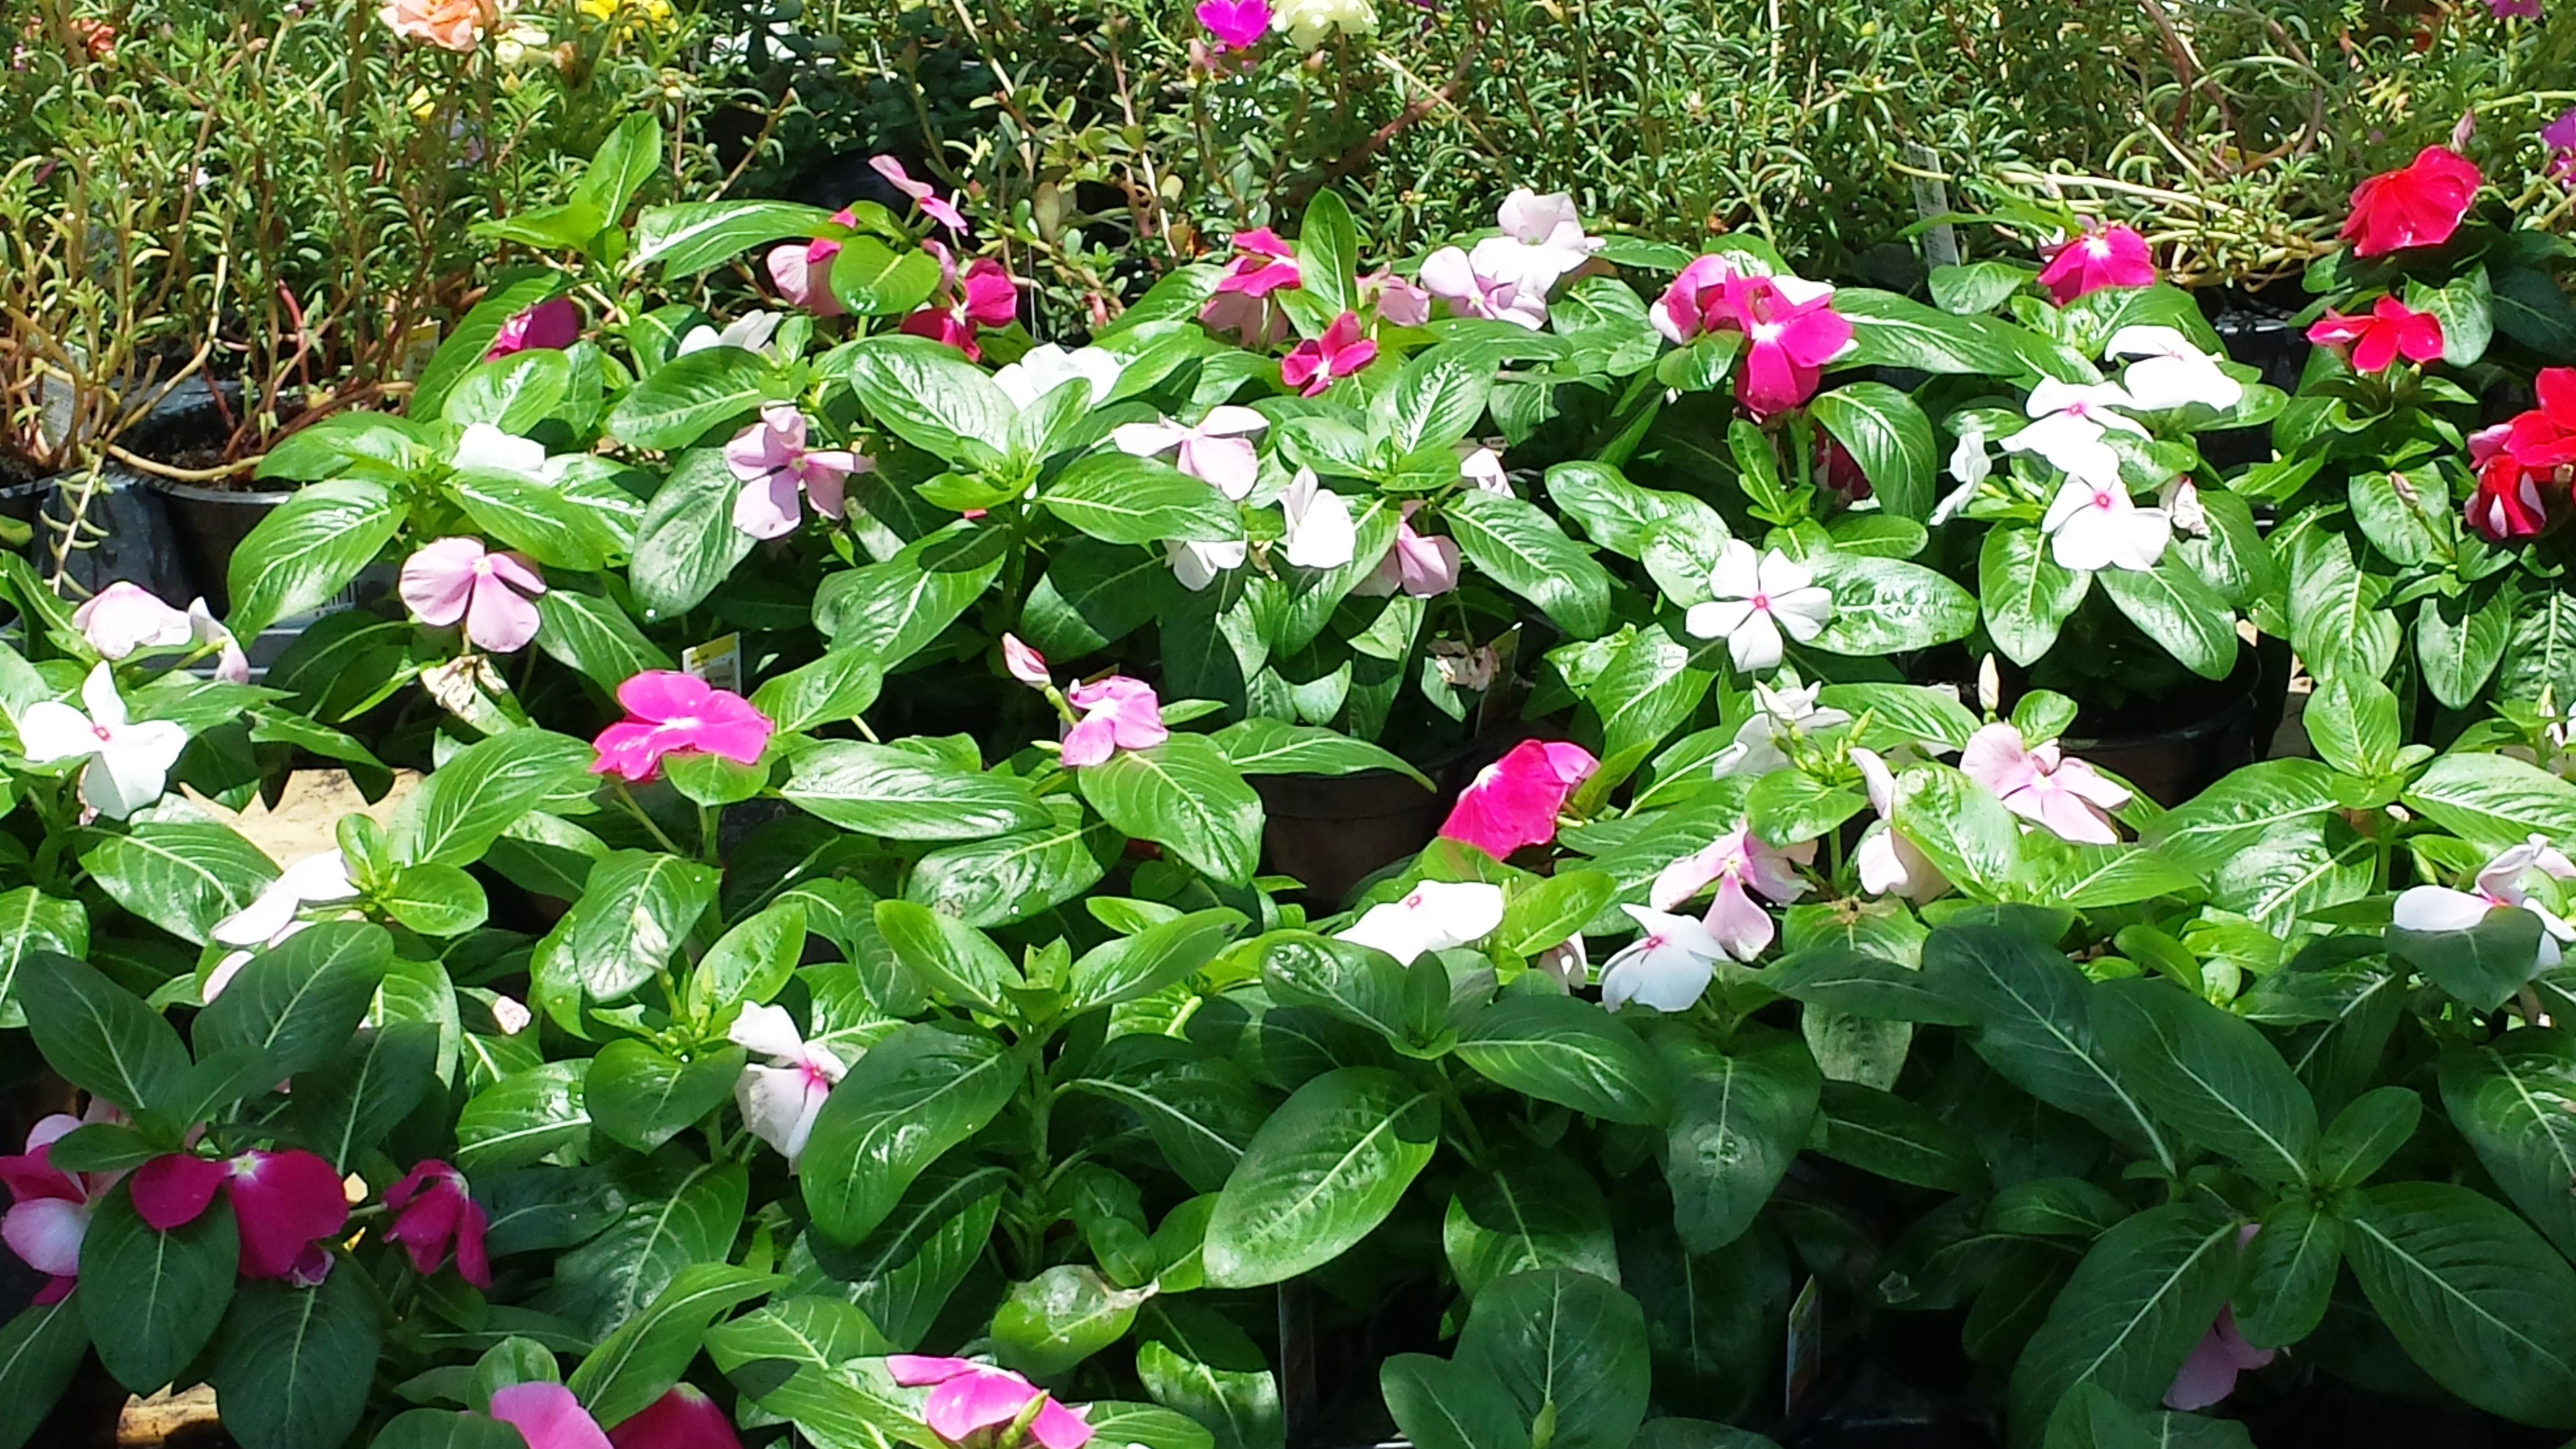 Its not too late for summer flowers lsu agcenter many retailers have a variety of plants available that can be used to freshen late summer flower beds photo by rick bogren izmirmasajfo